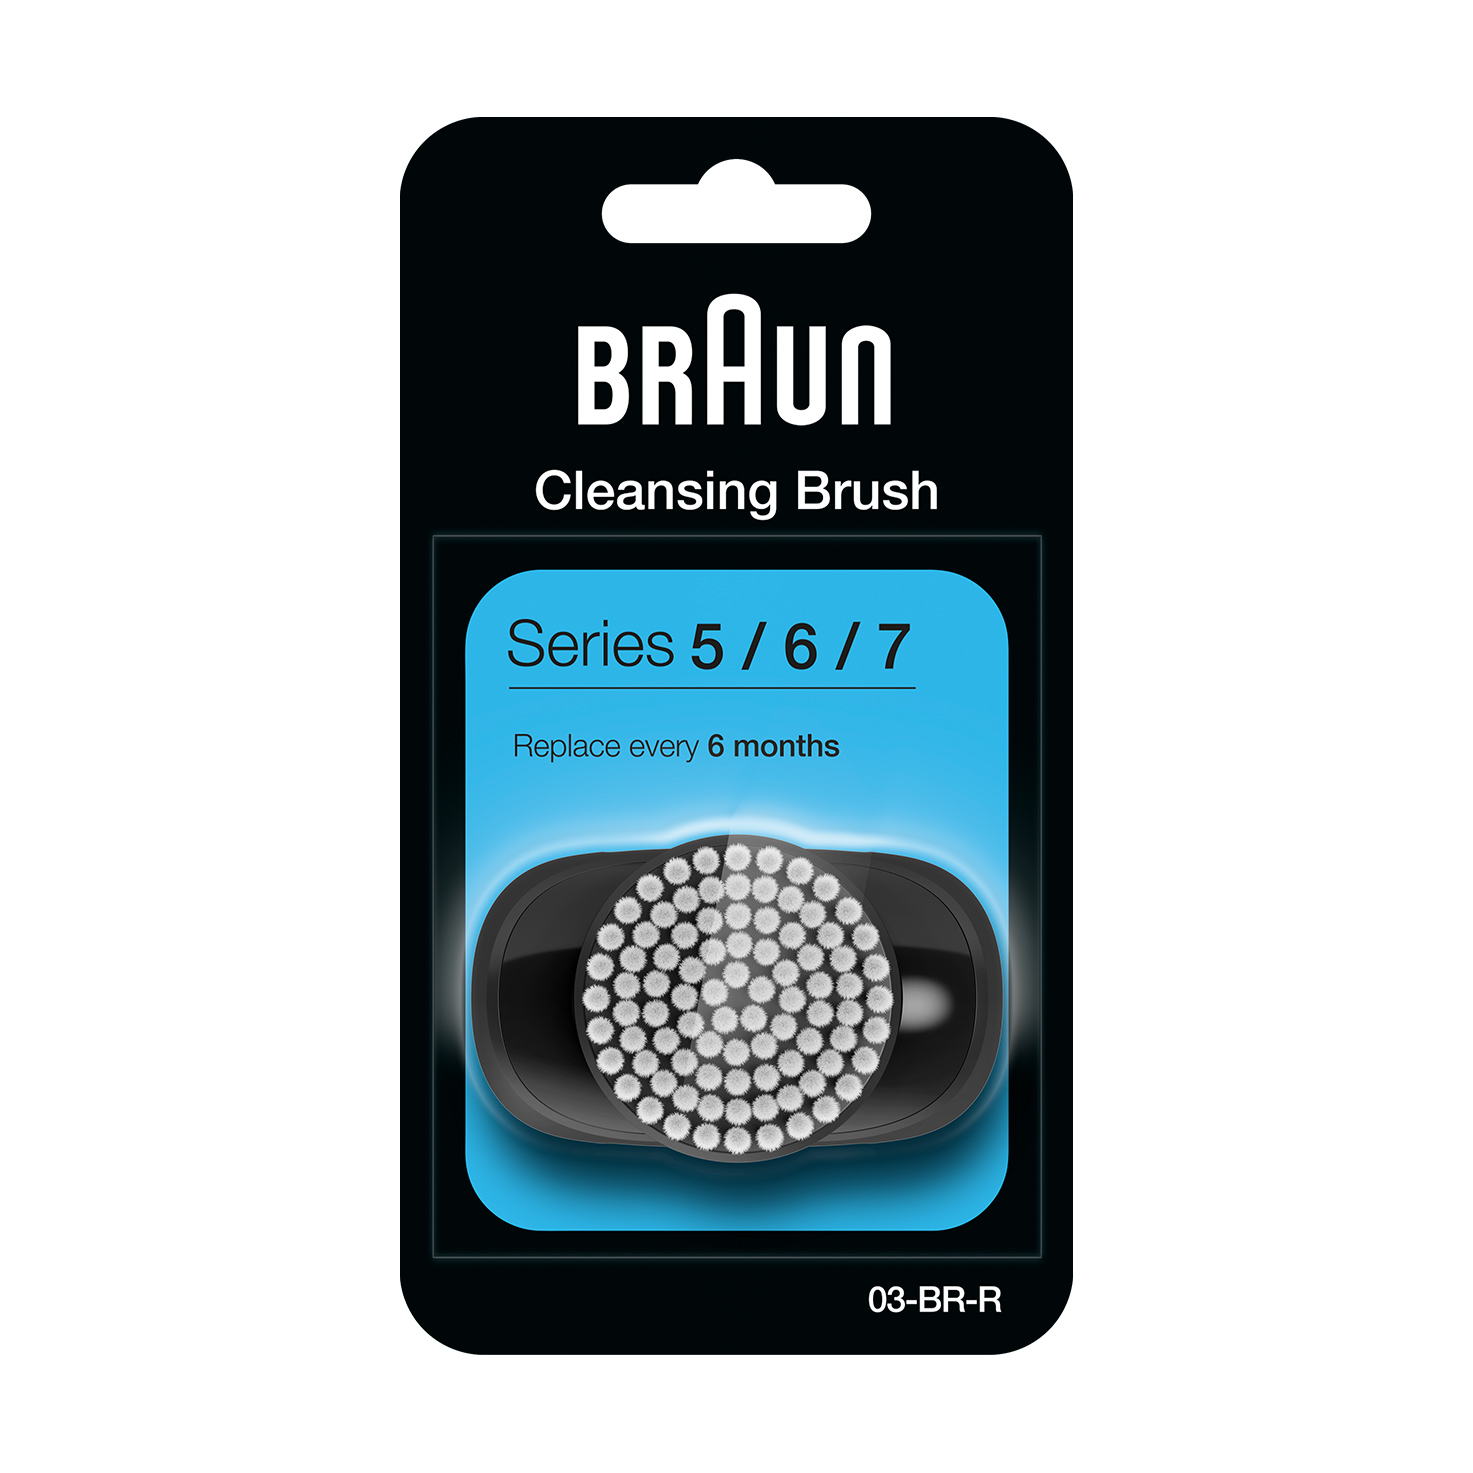 EasyClick Cleansing Brush refill for Braun Series 5, 6 and 7 electric shaver